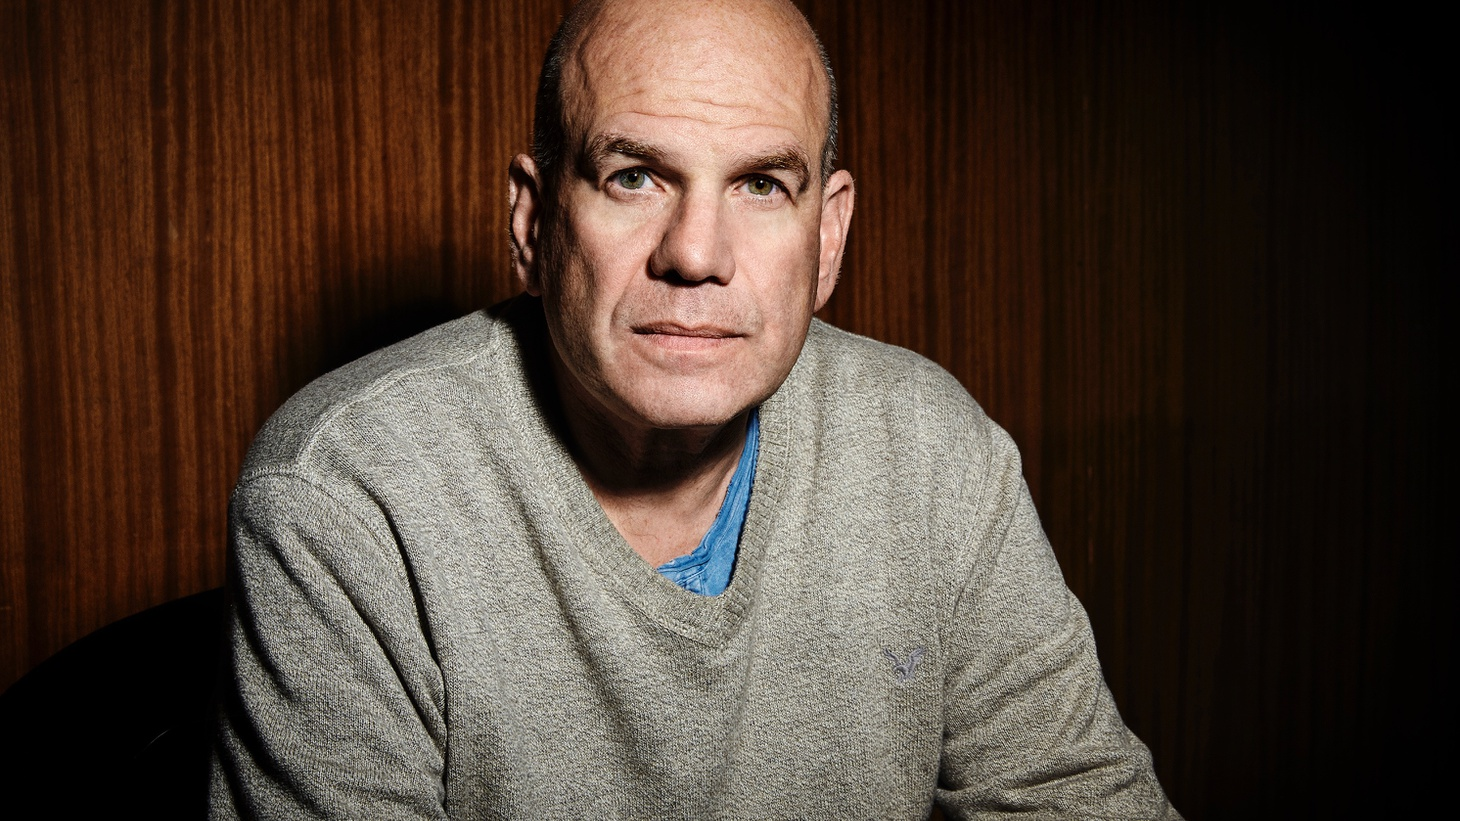 When David Simon started shopping his new show The Deuce--about the rise and legalization of the porn industry--he quickly realized a lot of networks didn't quite grasp his seriousness of purpose. The creator of The Wire and Treme tells us how The Deuce ended up back at his longtime TV home, HBO, and why he ended up making a show about porn in the first place.